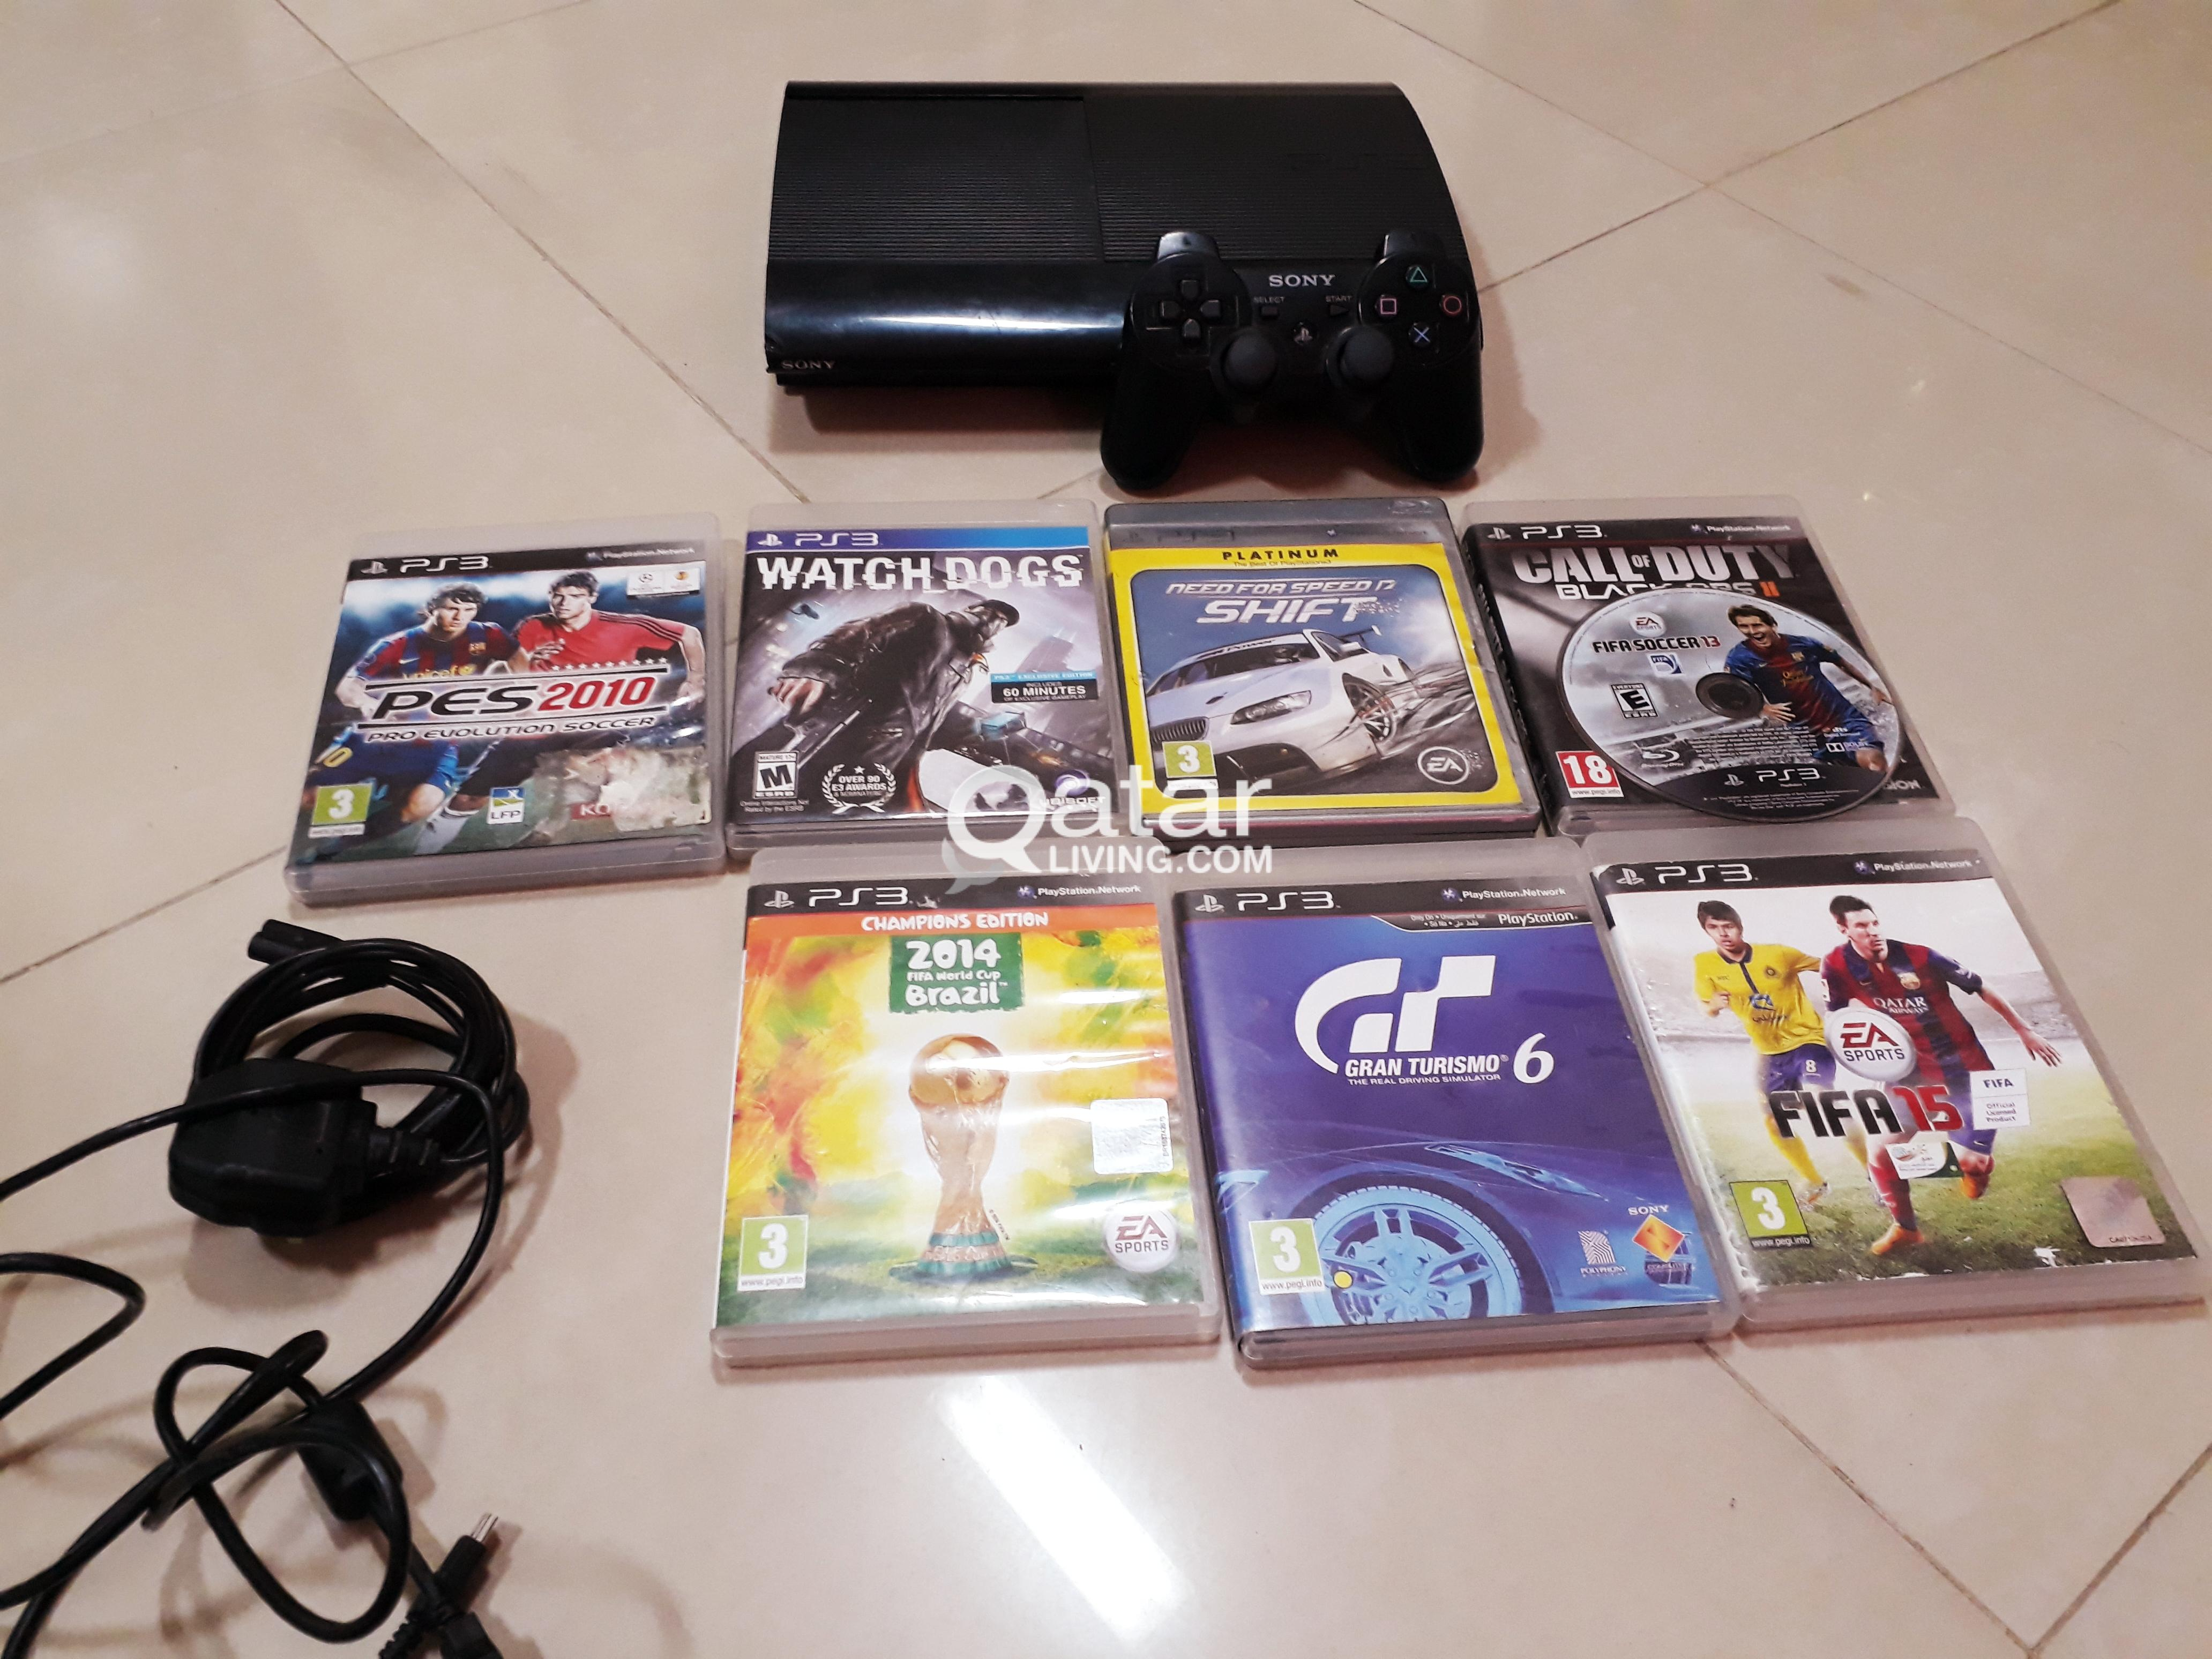 Sony Ps3 500gb For Sale Qatar Living Ps4 Dvd Fifa 2015 Title Information Ps 3